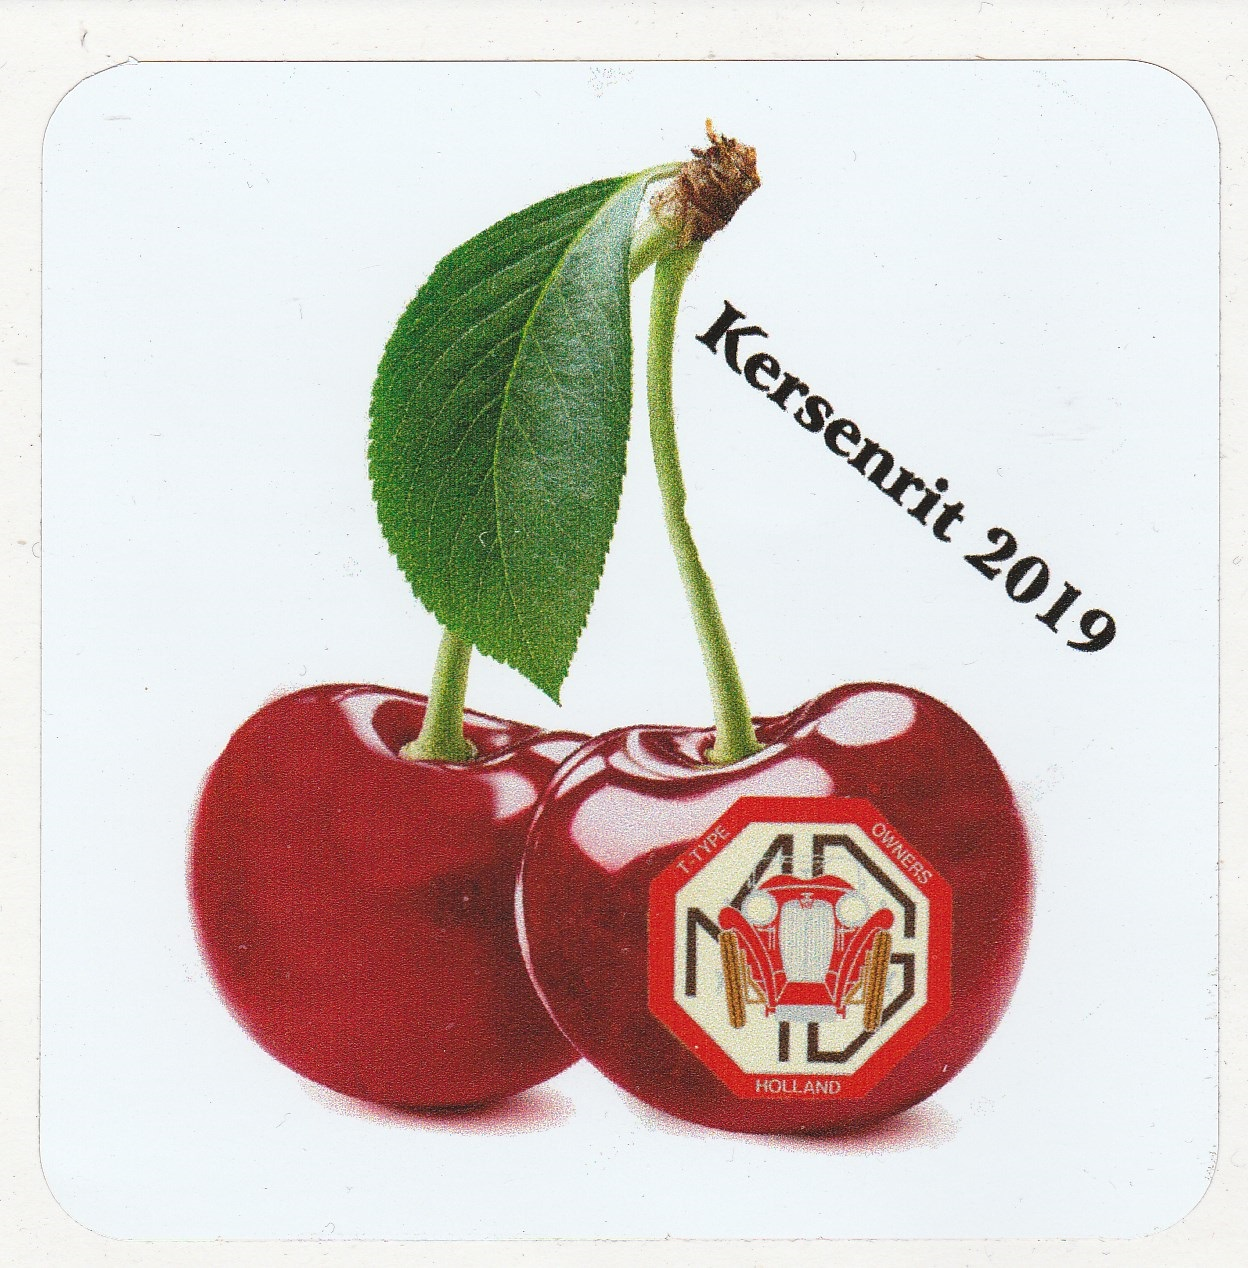 Kersenrit 2019 Sticker